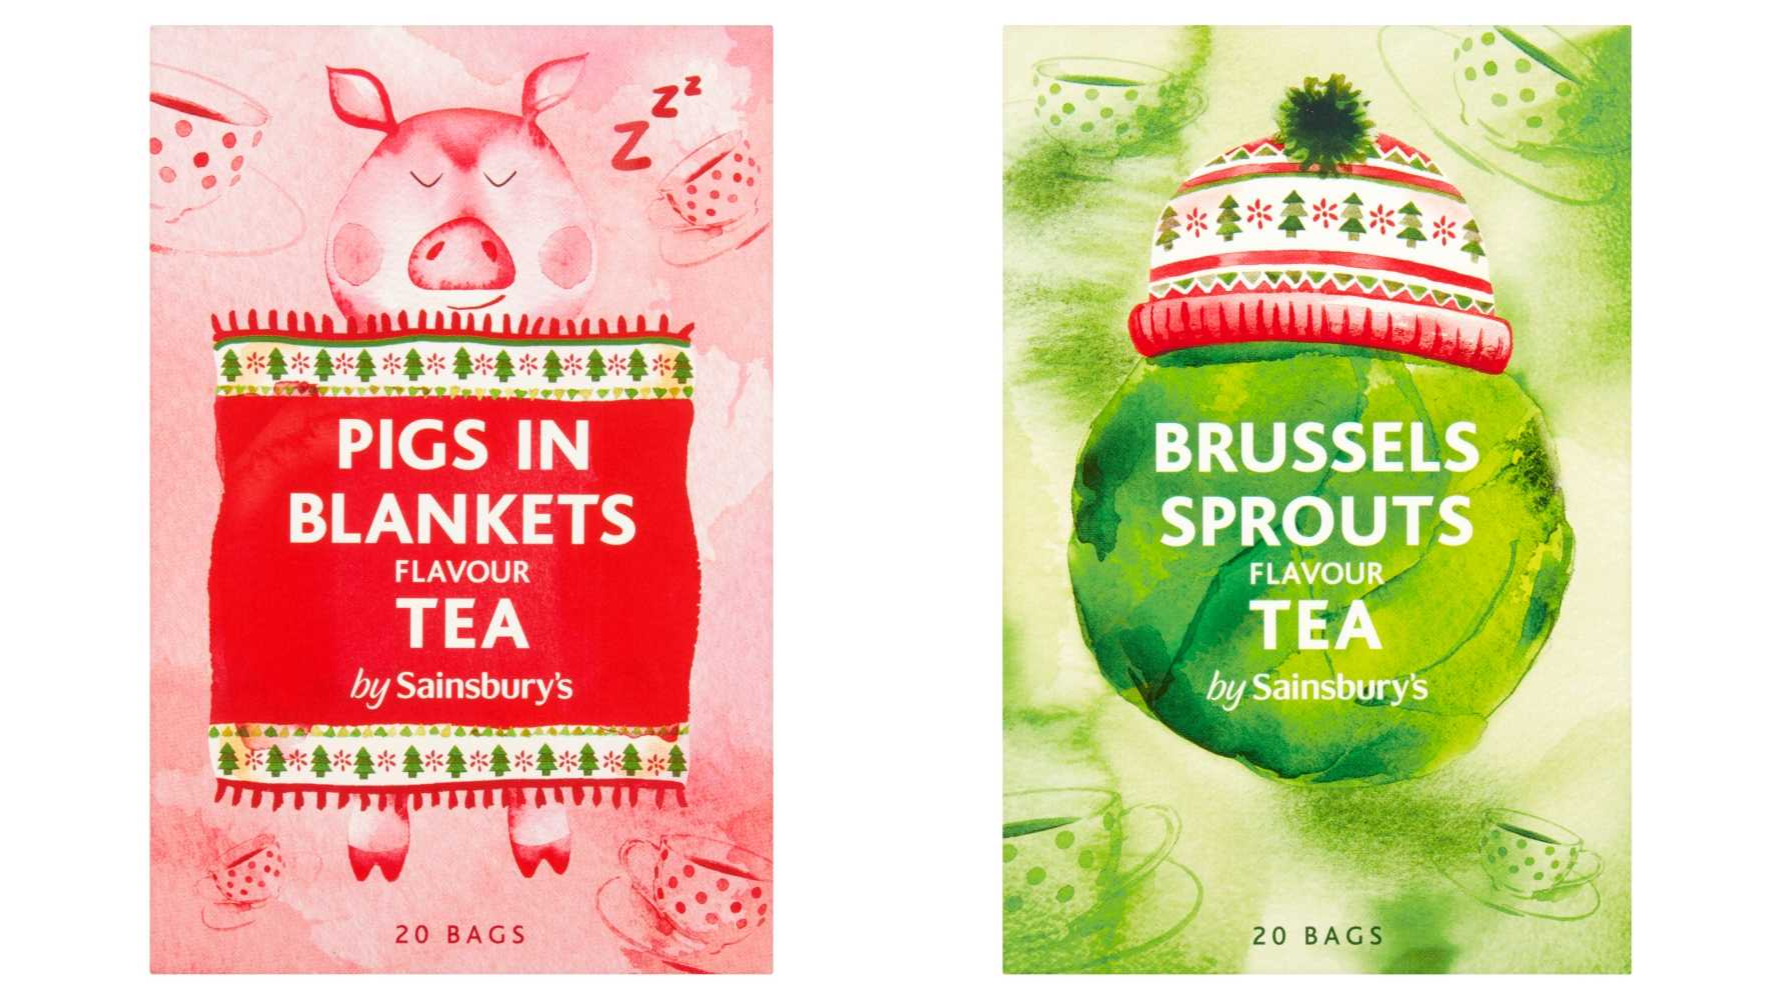 Sainsbury's Is Selling 'Sprouts' And 'Pigs In Blankets' Flavour Tea